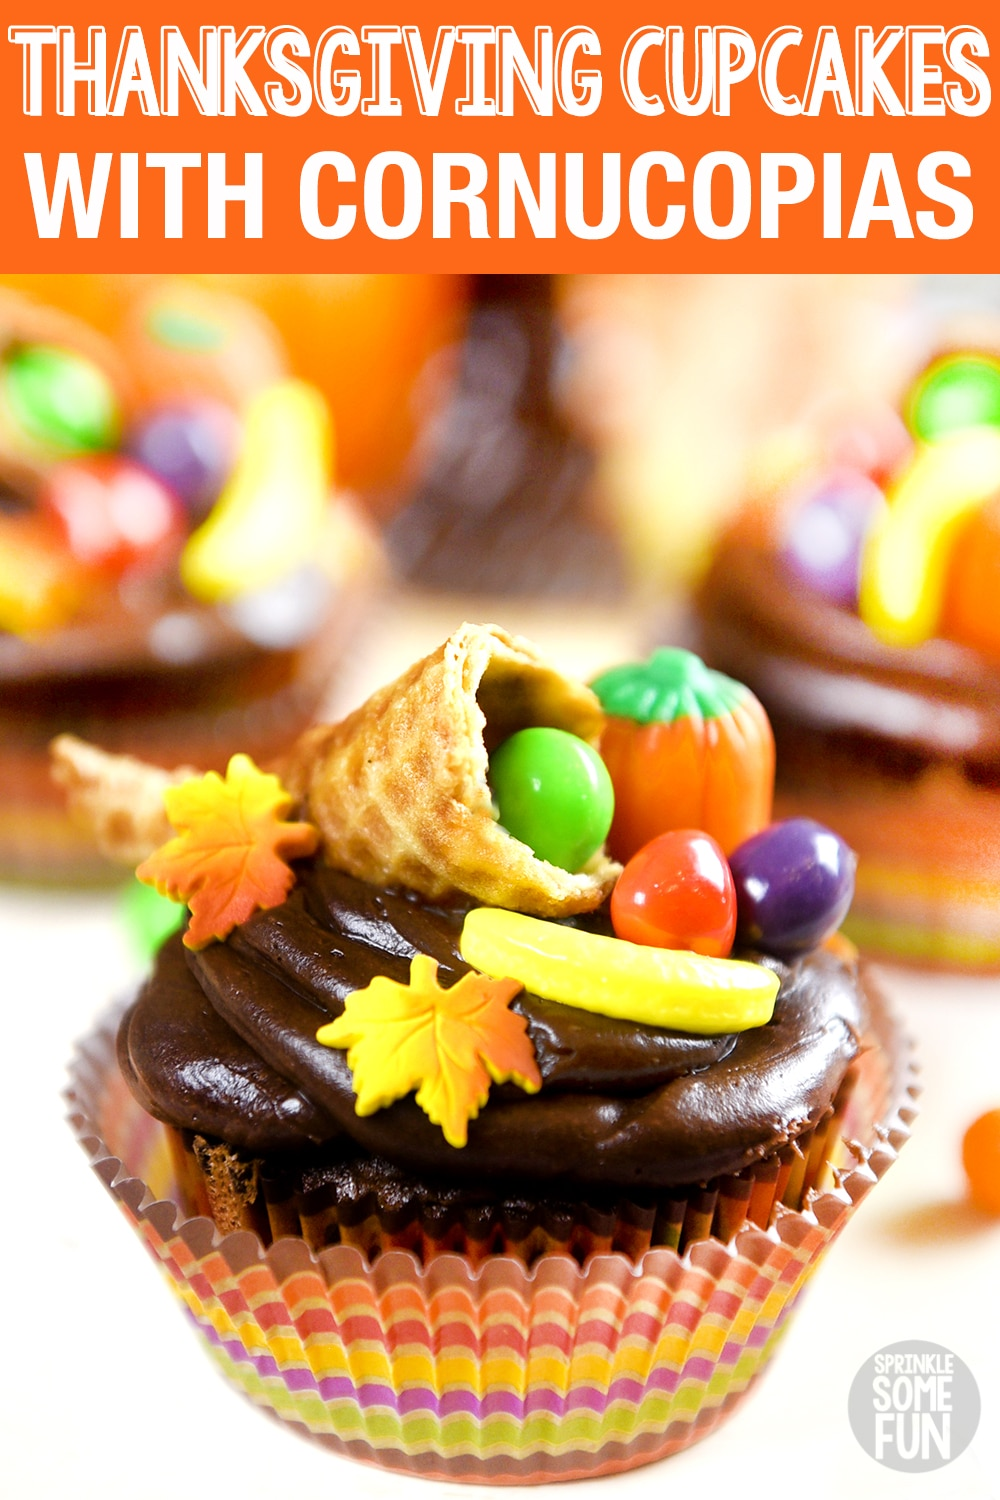 An adorable way to decorate cupcakes for Thanksgiving!  These Thanksgiving cupcakes make the perfect centerpiece for a Thanksgiving dessert table.  Also, they are easy enough that the kids can help make them too. #cupcakes #fall #toppers #Thanksgiving #Thanksgivingcupcakes #Cornucopia #Cornucopiacupcakes #cutecupcakes #fallcupcakes #thanksgivingdecorations #cakedecorating #thanksgivingcupcaketoppers